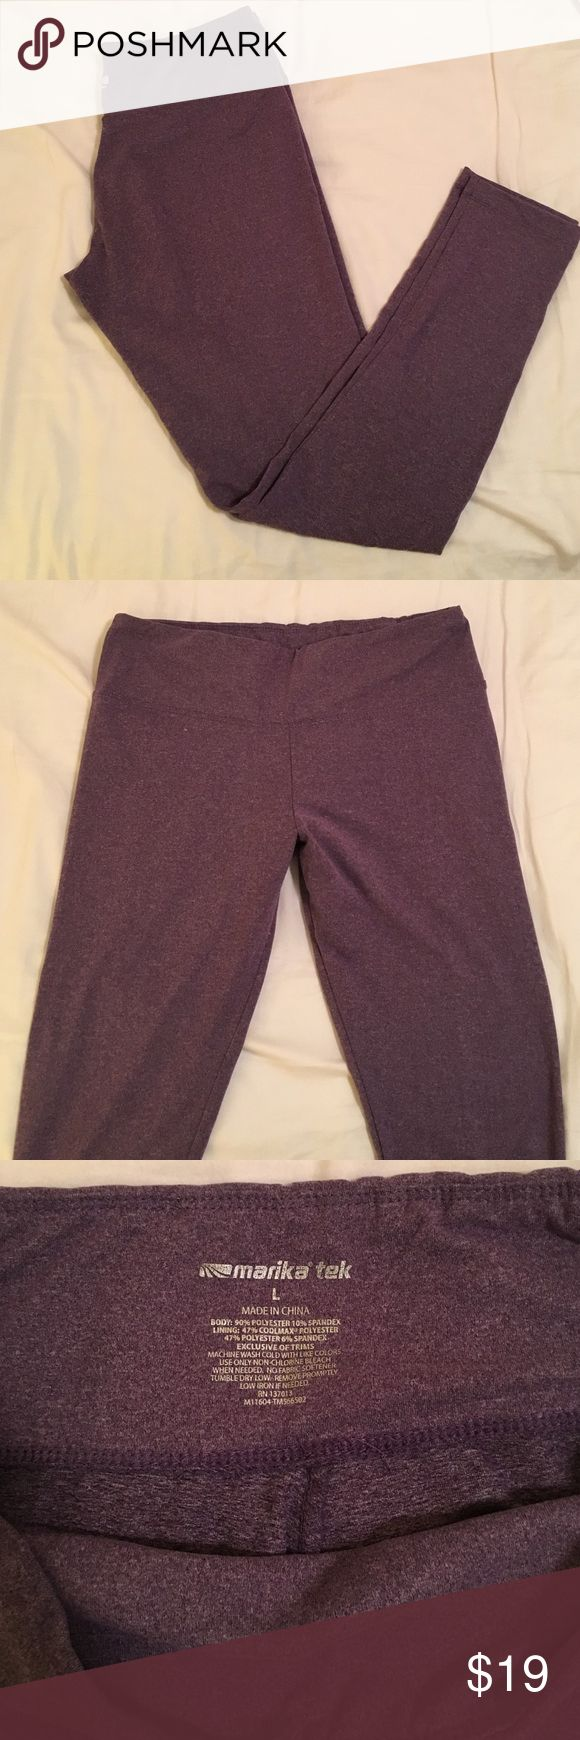 Purple spandex pants Super soft and comfy Long spandex. Great for hanging out or working out. 90% polyester 10% spandex. In great condition Marika Pants Leggings